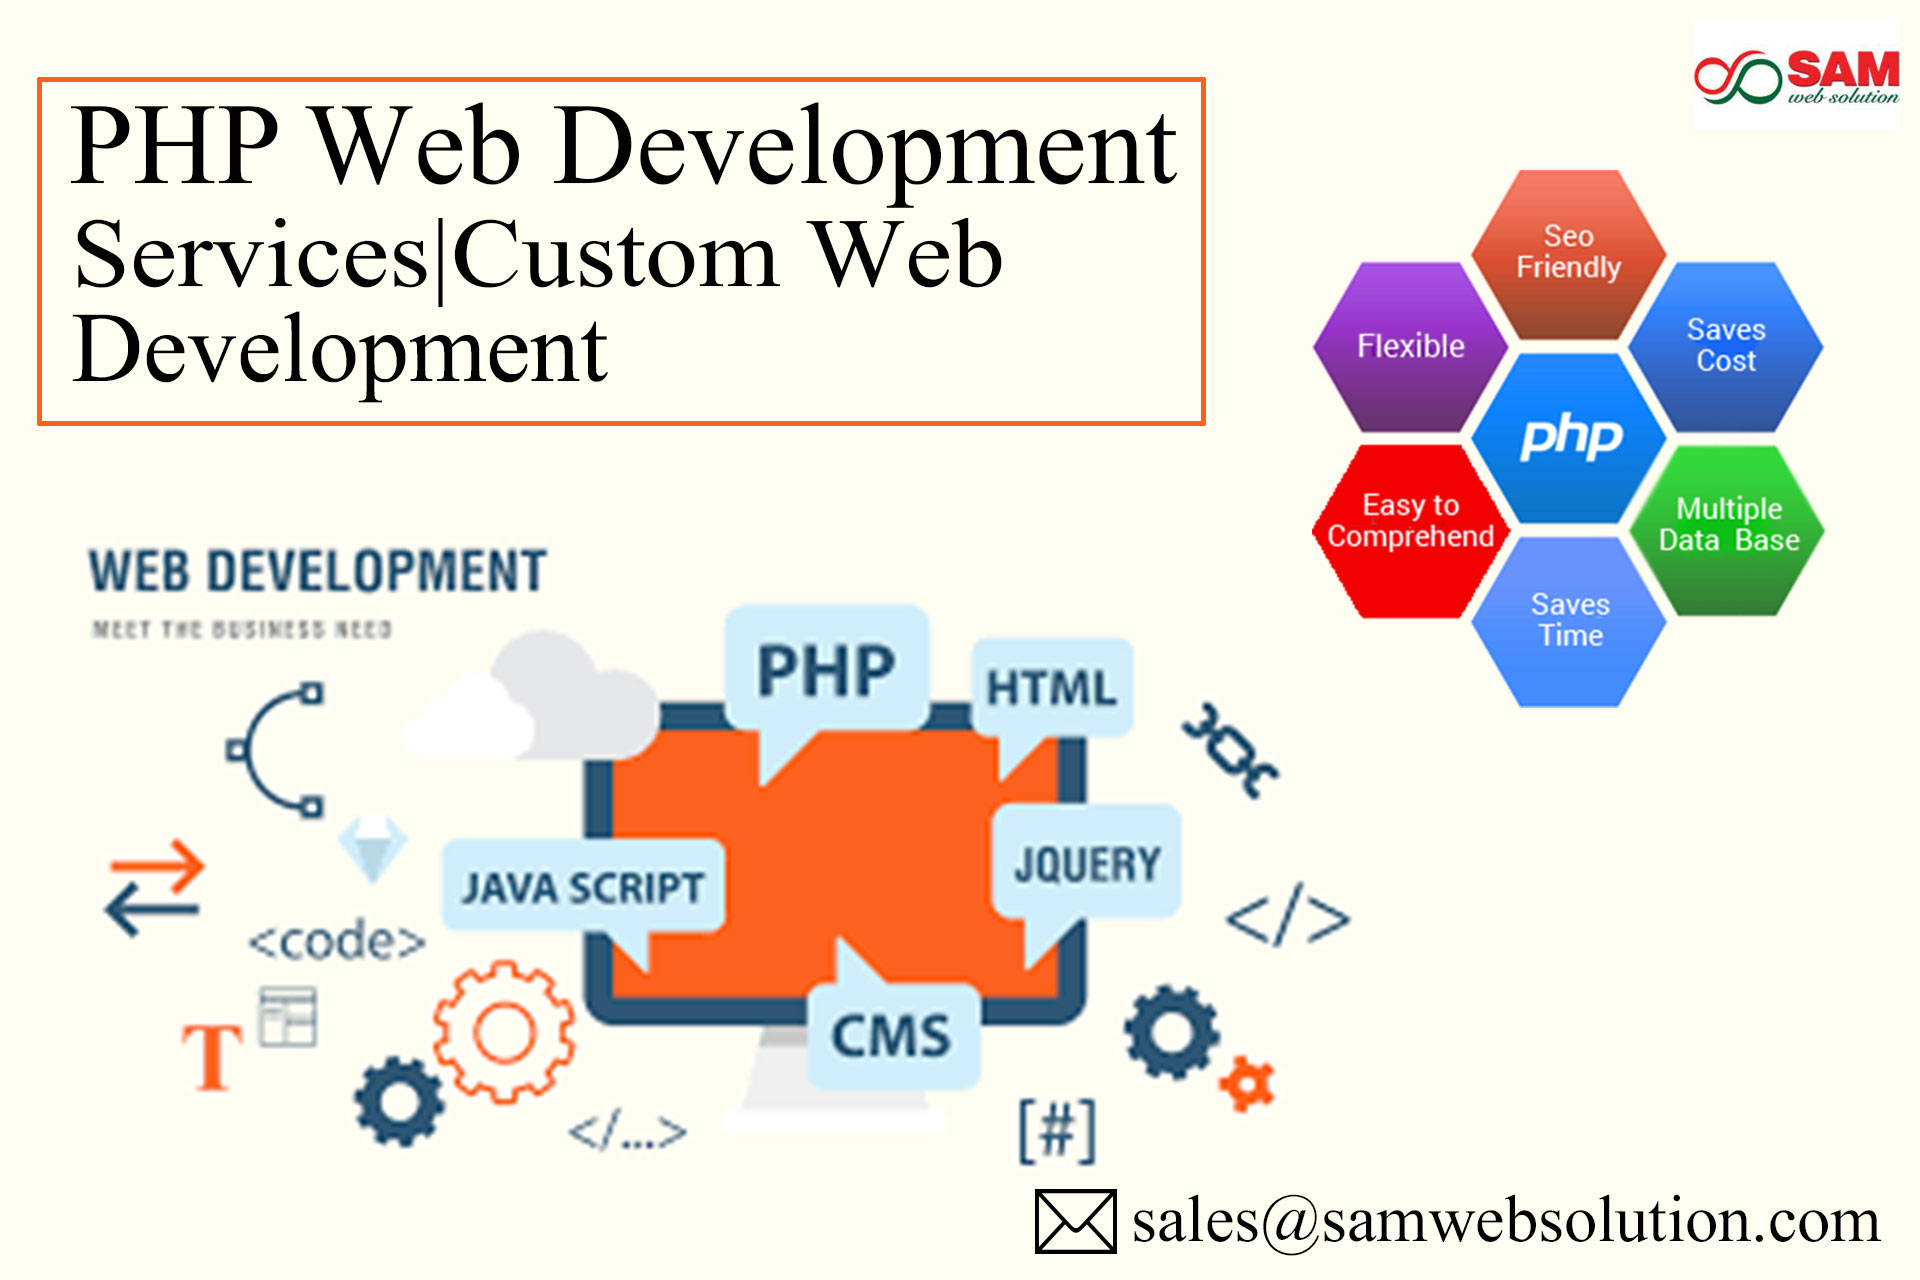 PHP based business solutions